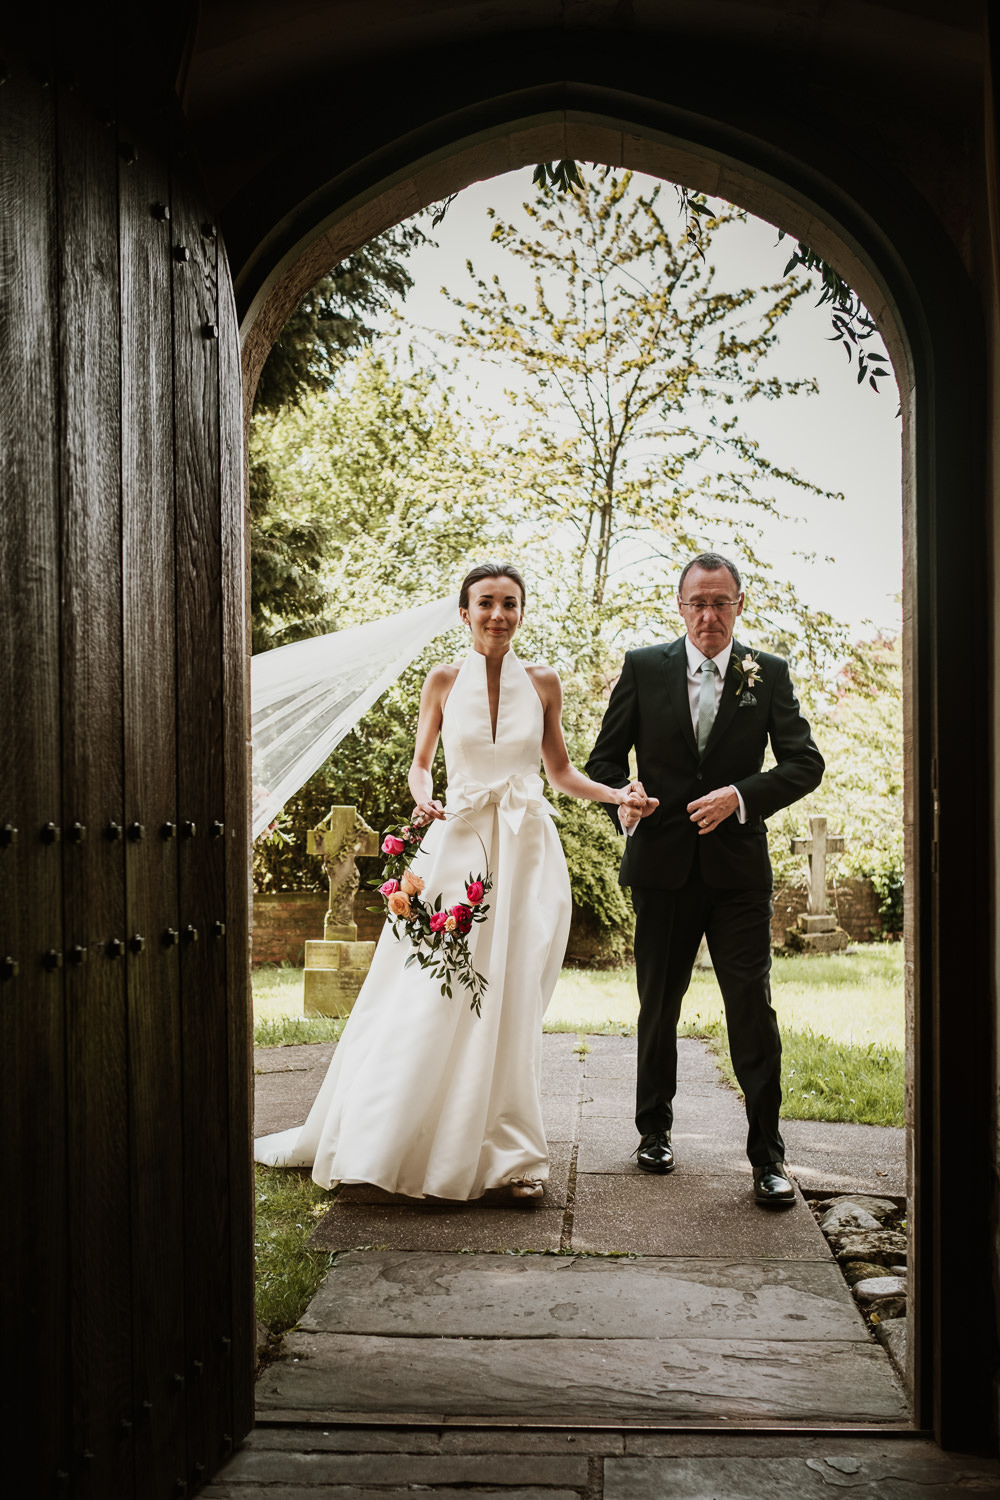 Bride Bridal Halterneck Collar Dress Gown Pockets Bow Jesus Peiro Floral Hoop Veil Middlethorpe Hall Wedding Andy Withey Photography